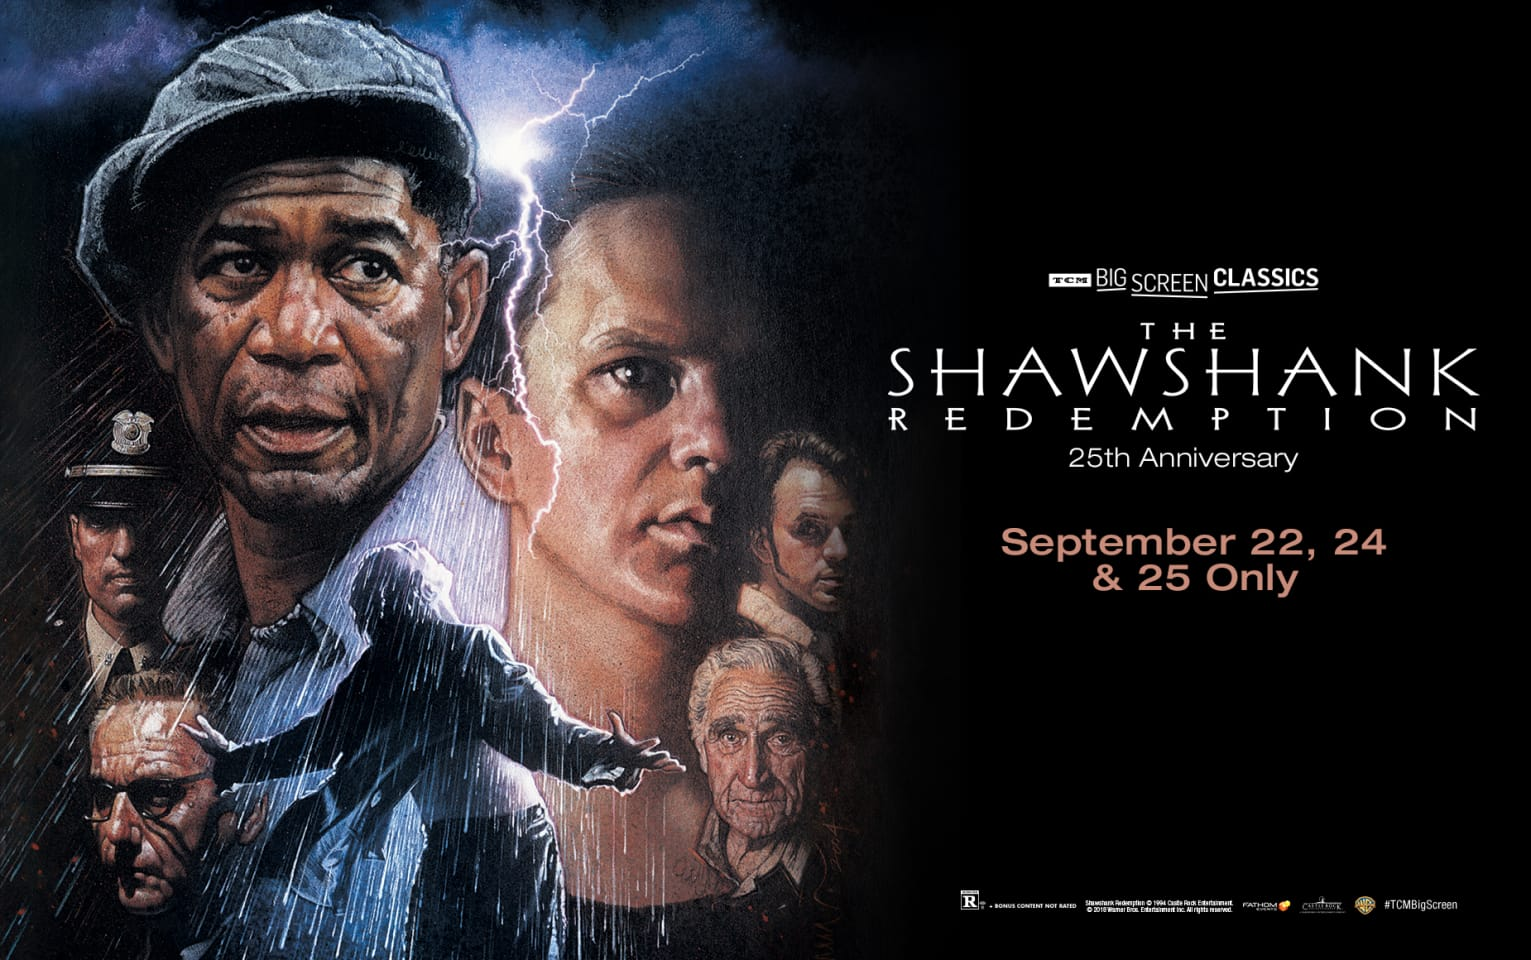 The Shawshank Redemption 25th Anniversary (1994) presented by TCM Poster 1